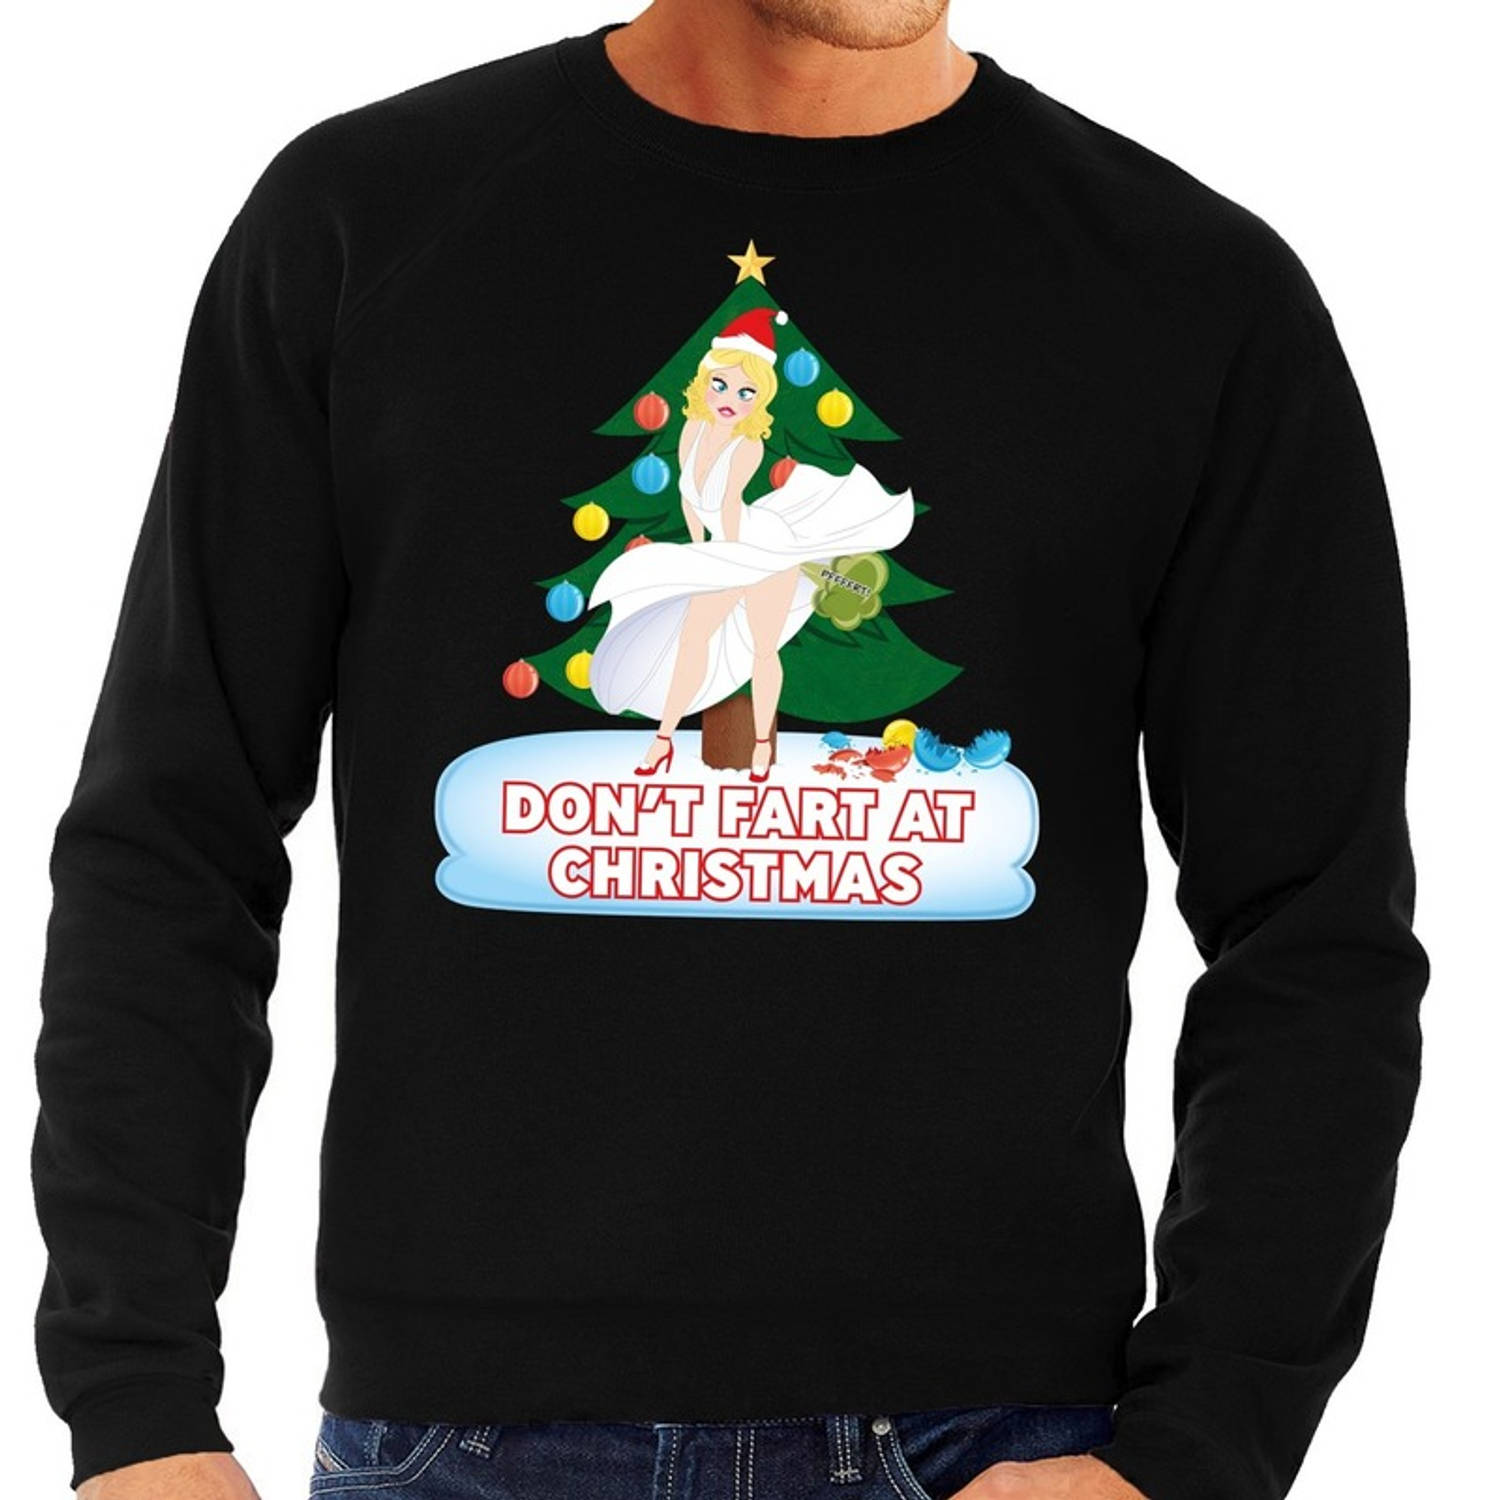 Foute kersttrui / sweater zwart - Marilyn Monroe - Dont Fart at Christmas S (48)